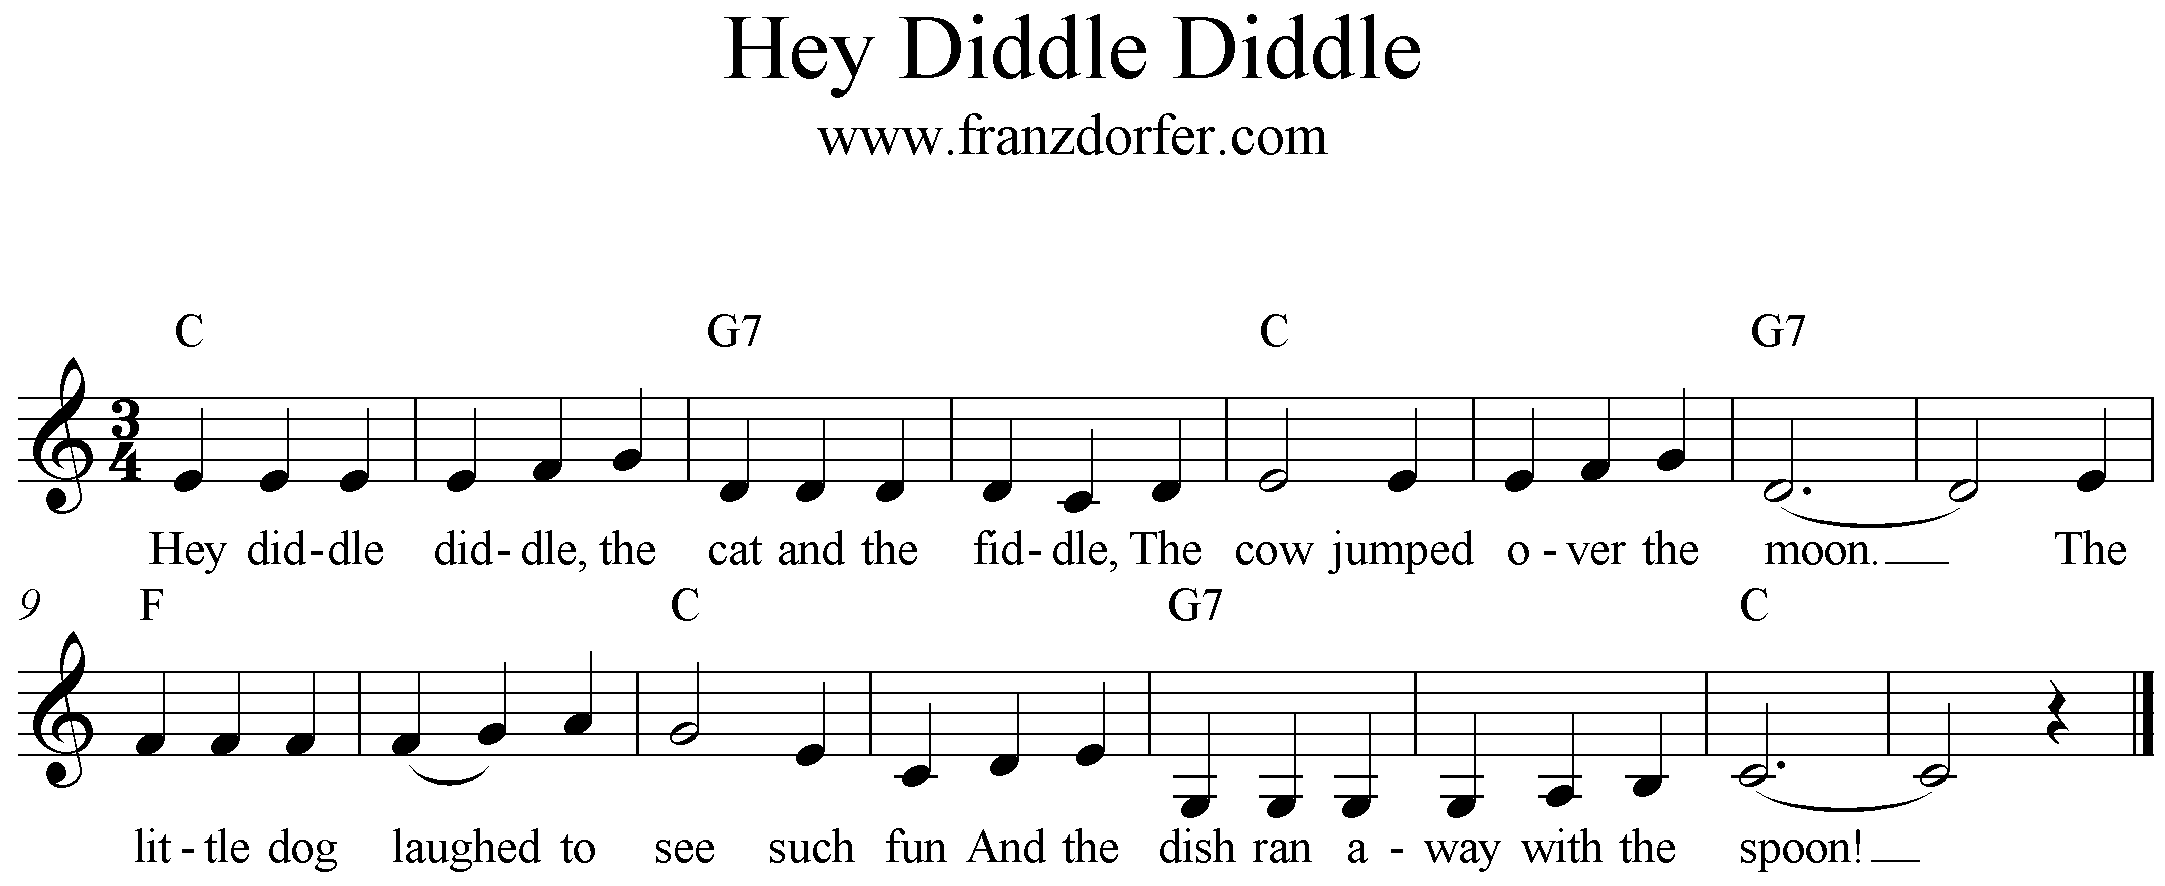 fresheet music Hey Diddle Diddle